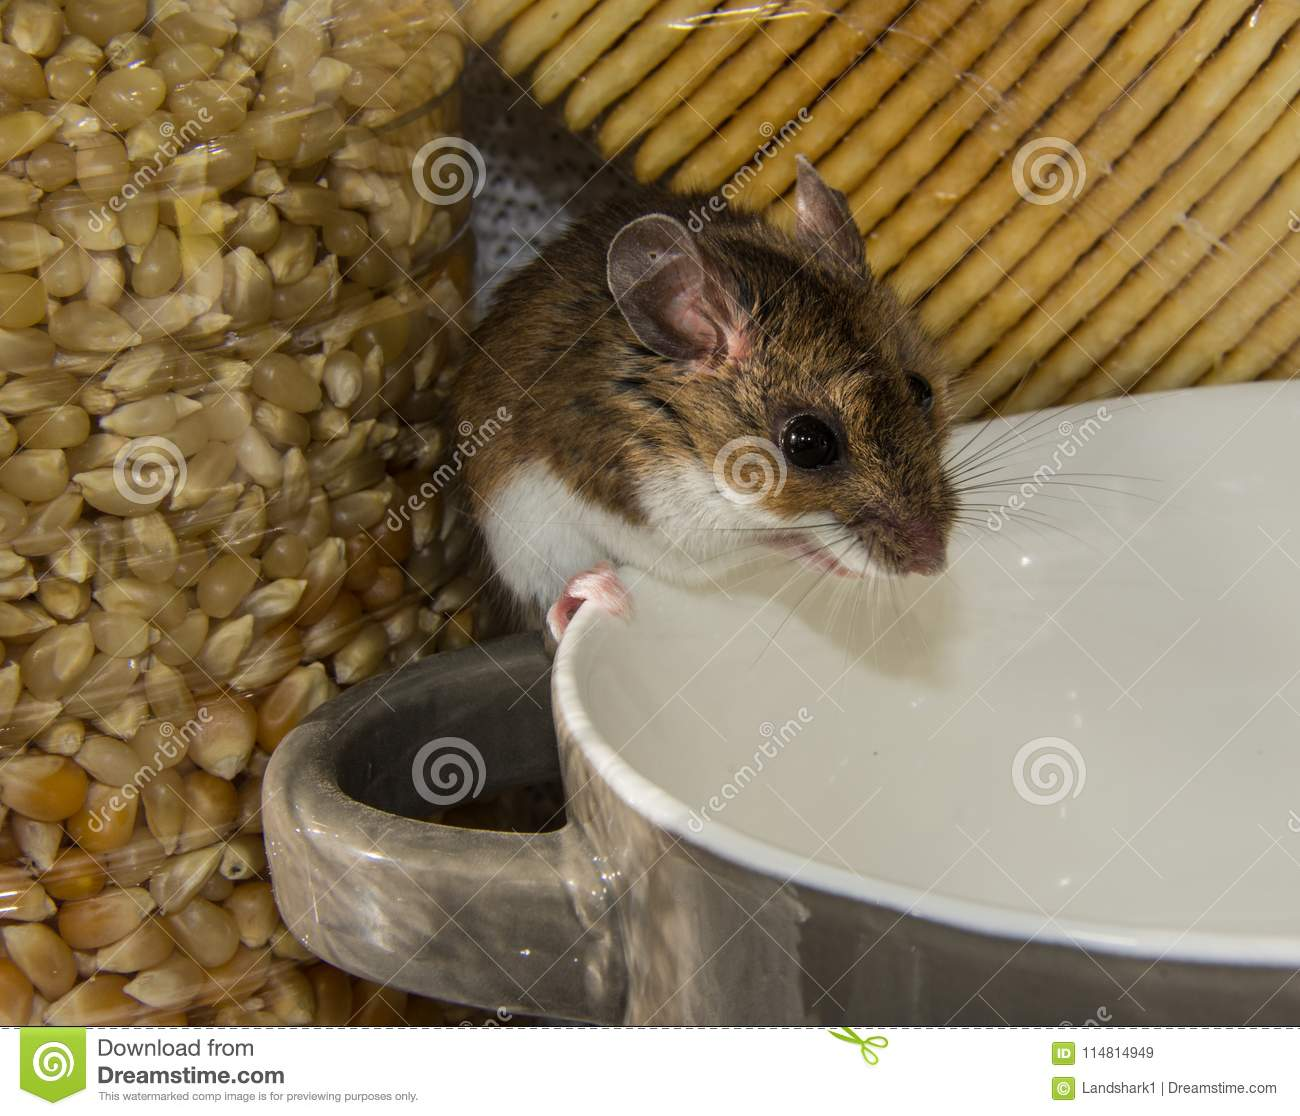 A Wild Brown House Mouse Perched On The Edge Of A Bowl In A Kitchen Cabinet Stock Image Image Of Chew Invade 114814949